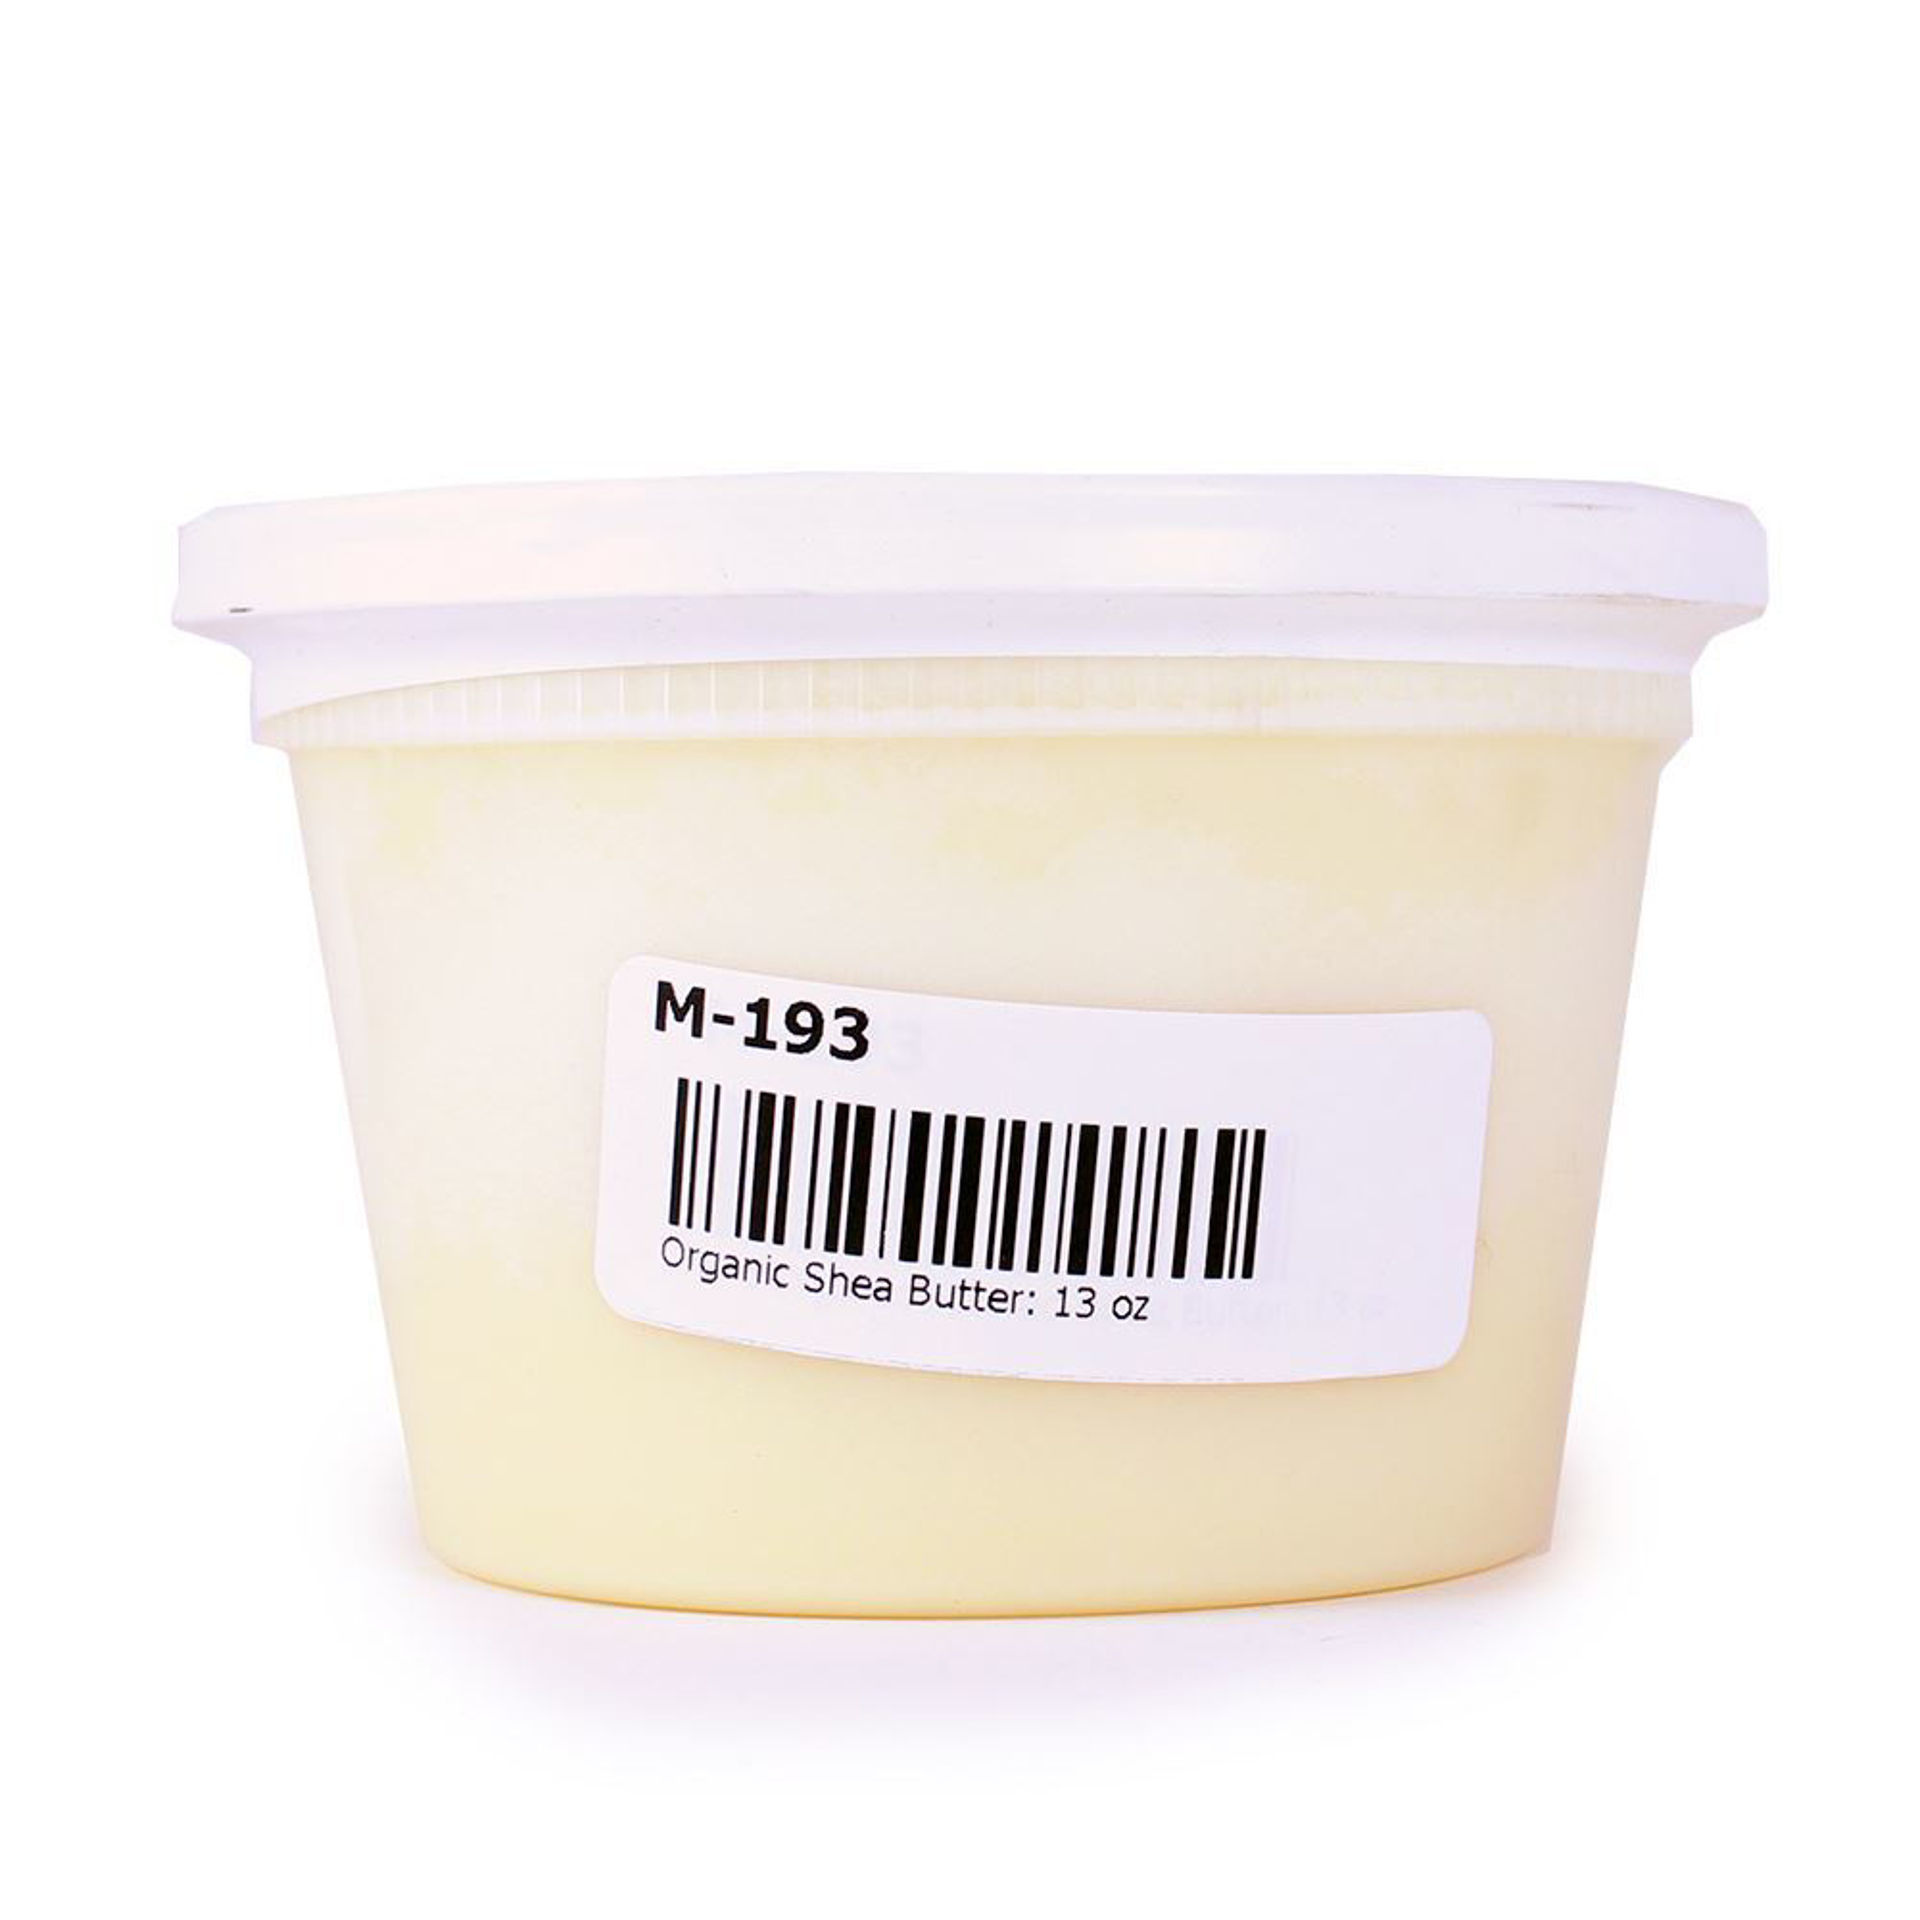 Picture of Organic Shea Butter: 13 oz